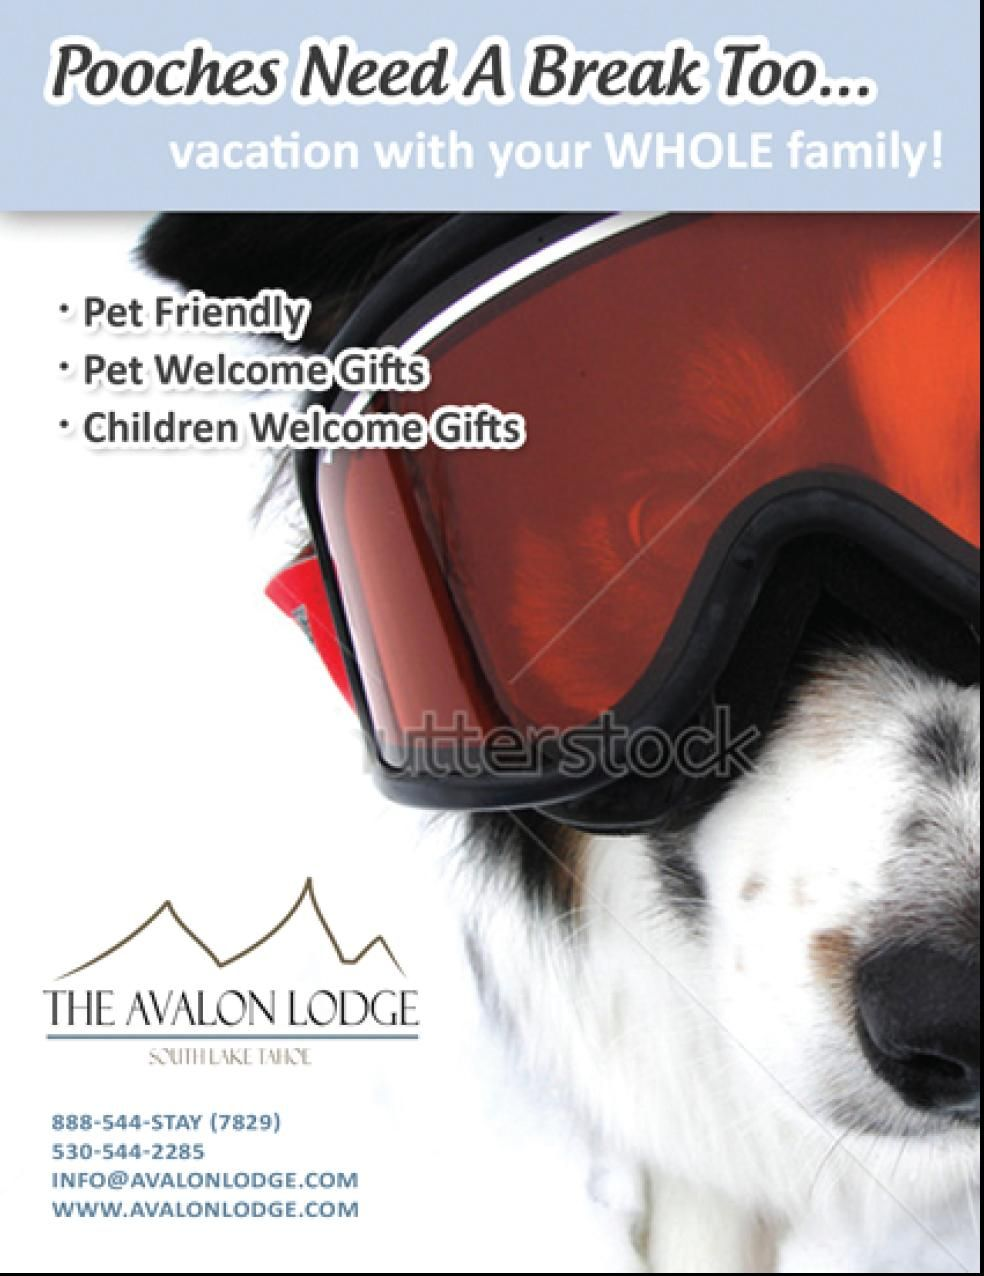 Looking For A Pet Friendly Hotel In South Lake Tahoe You Found It We Accept Well Behave Pet Of All Size South Lake Tahoe Pet Friendly Hotels Lakeside Beach